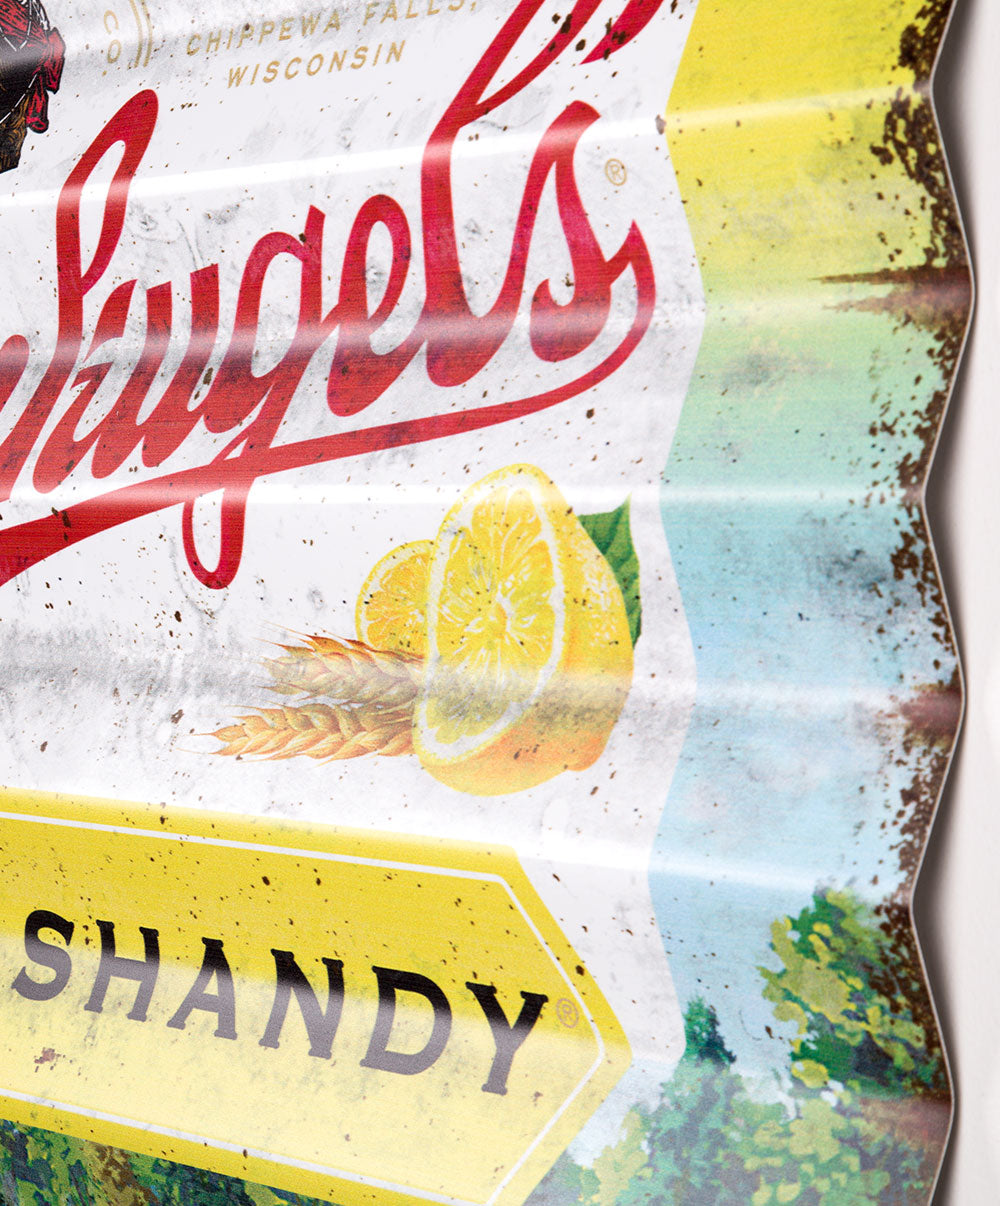 CORRUGATED SHANDY SIGN